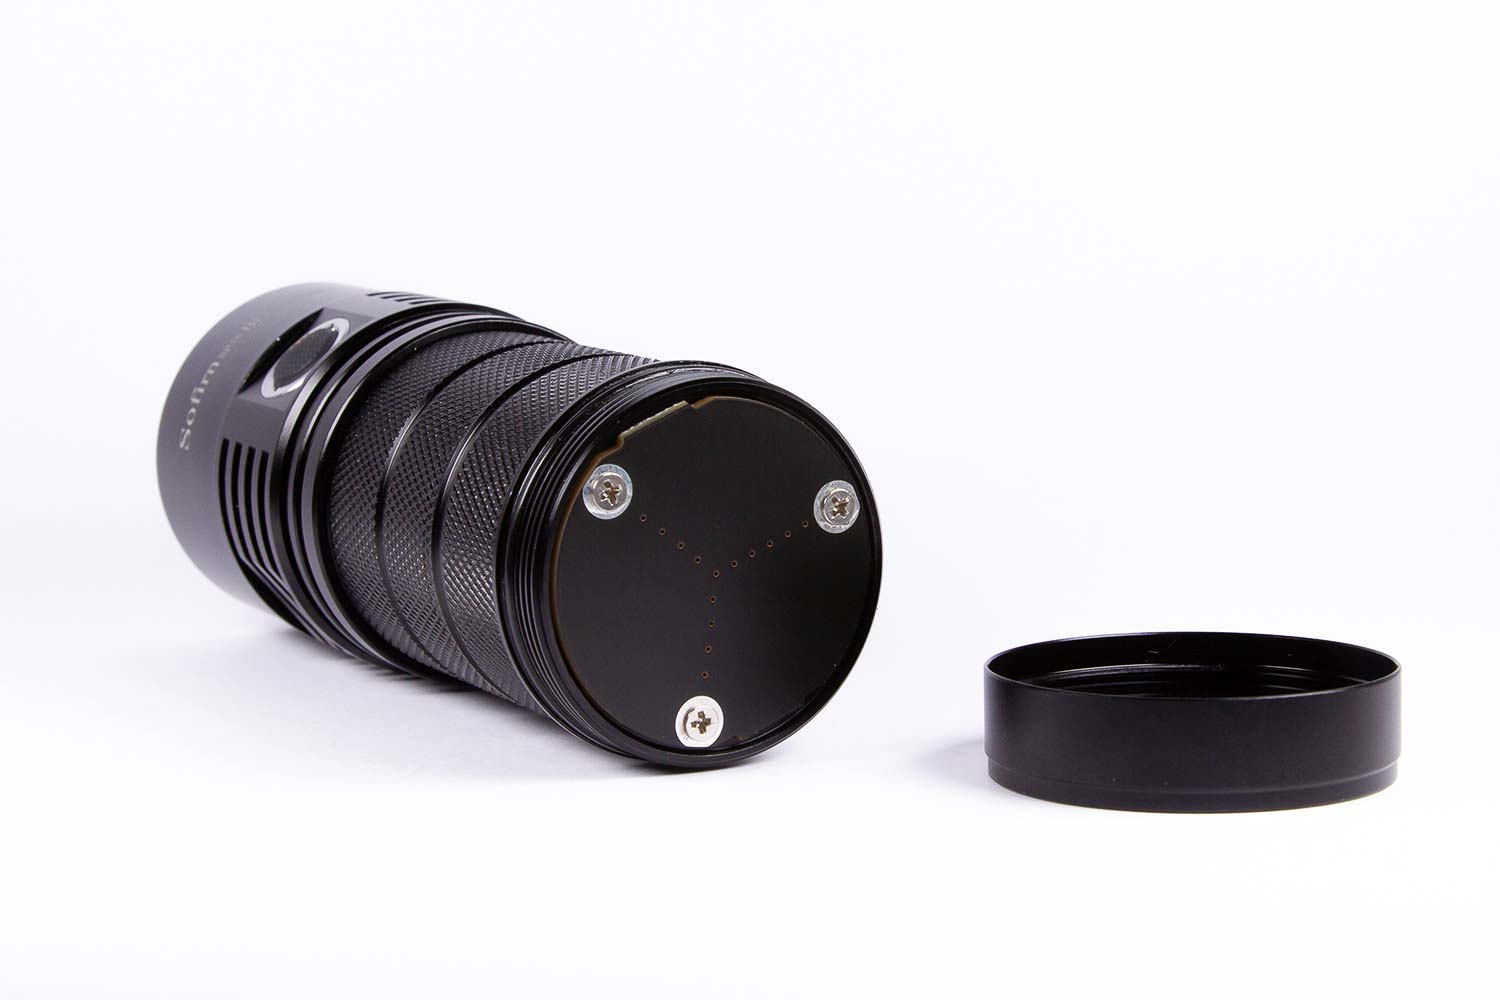 Sofirn SP36 tailcap